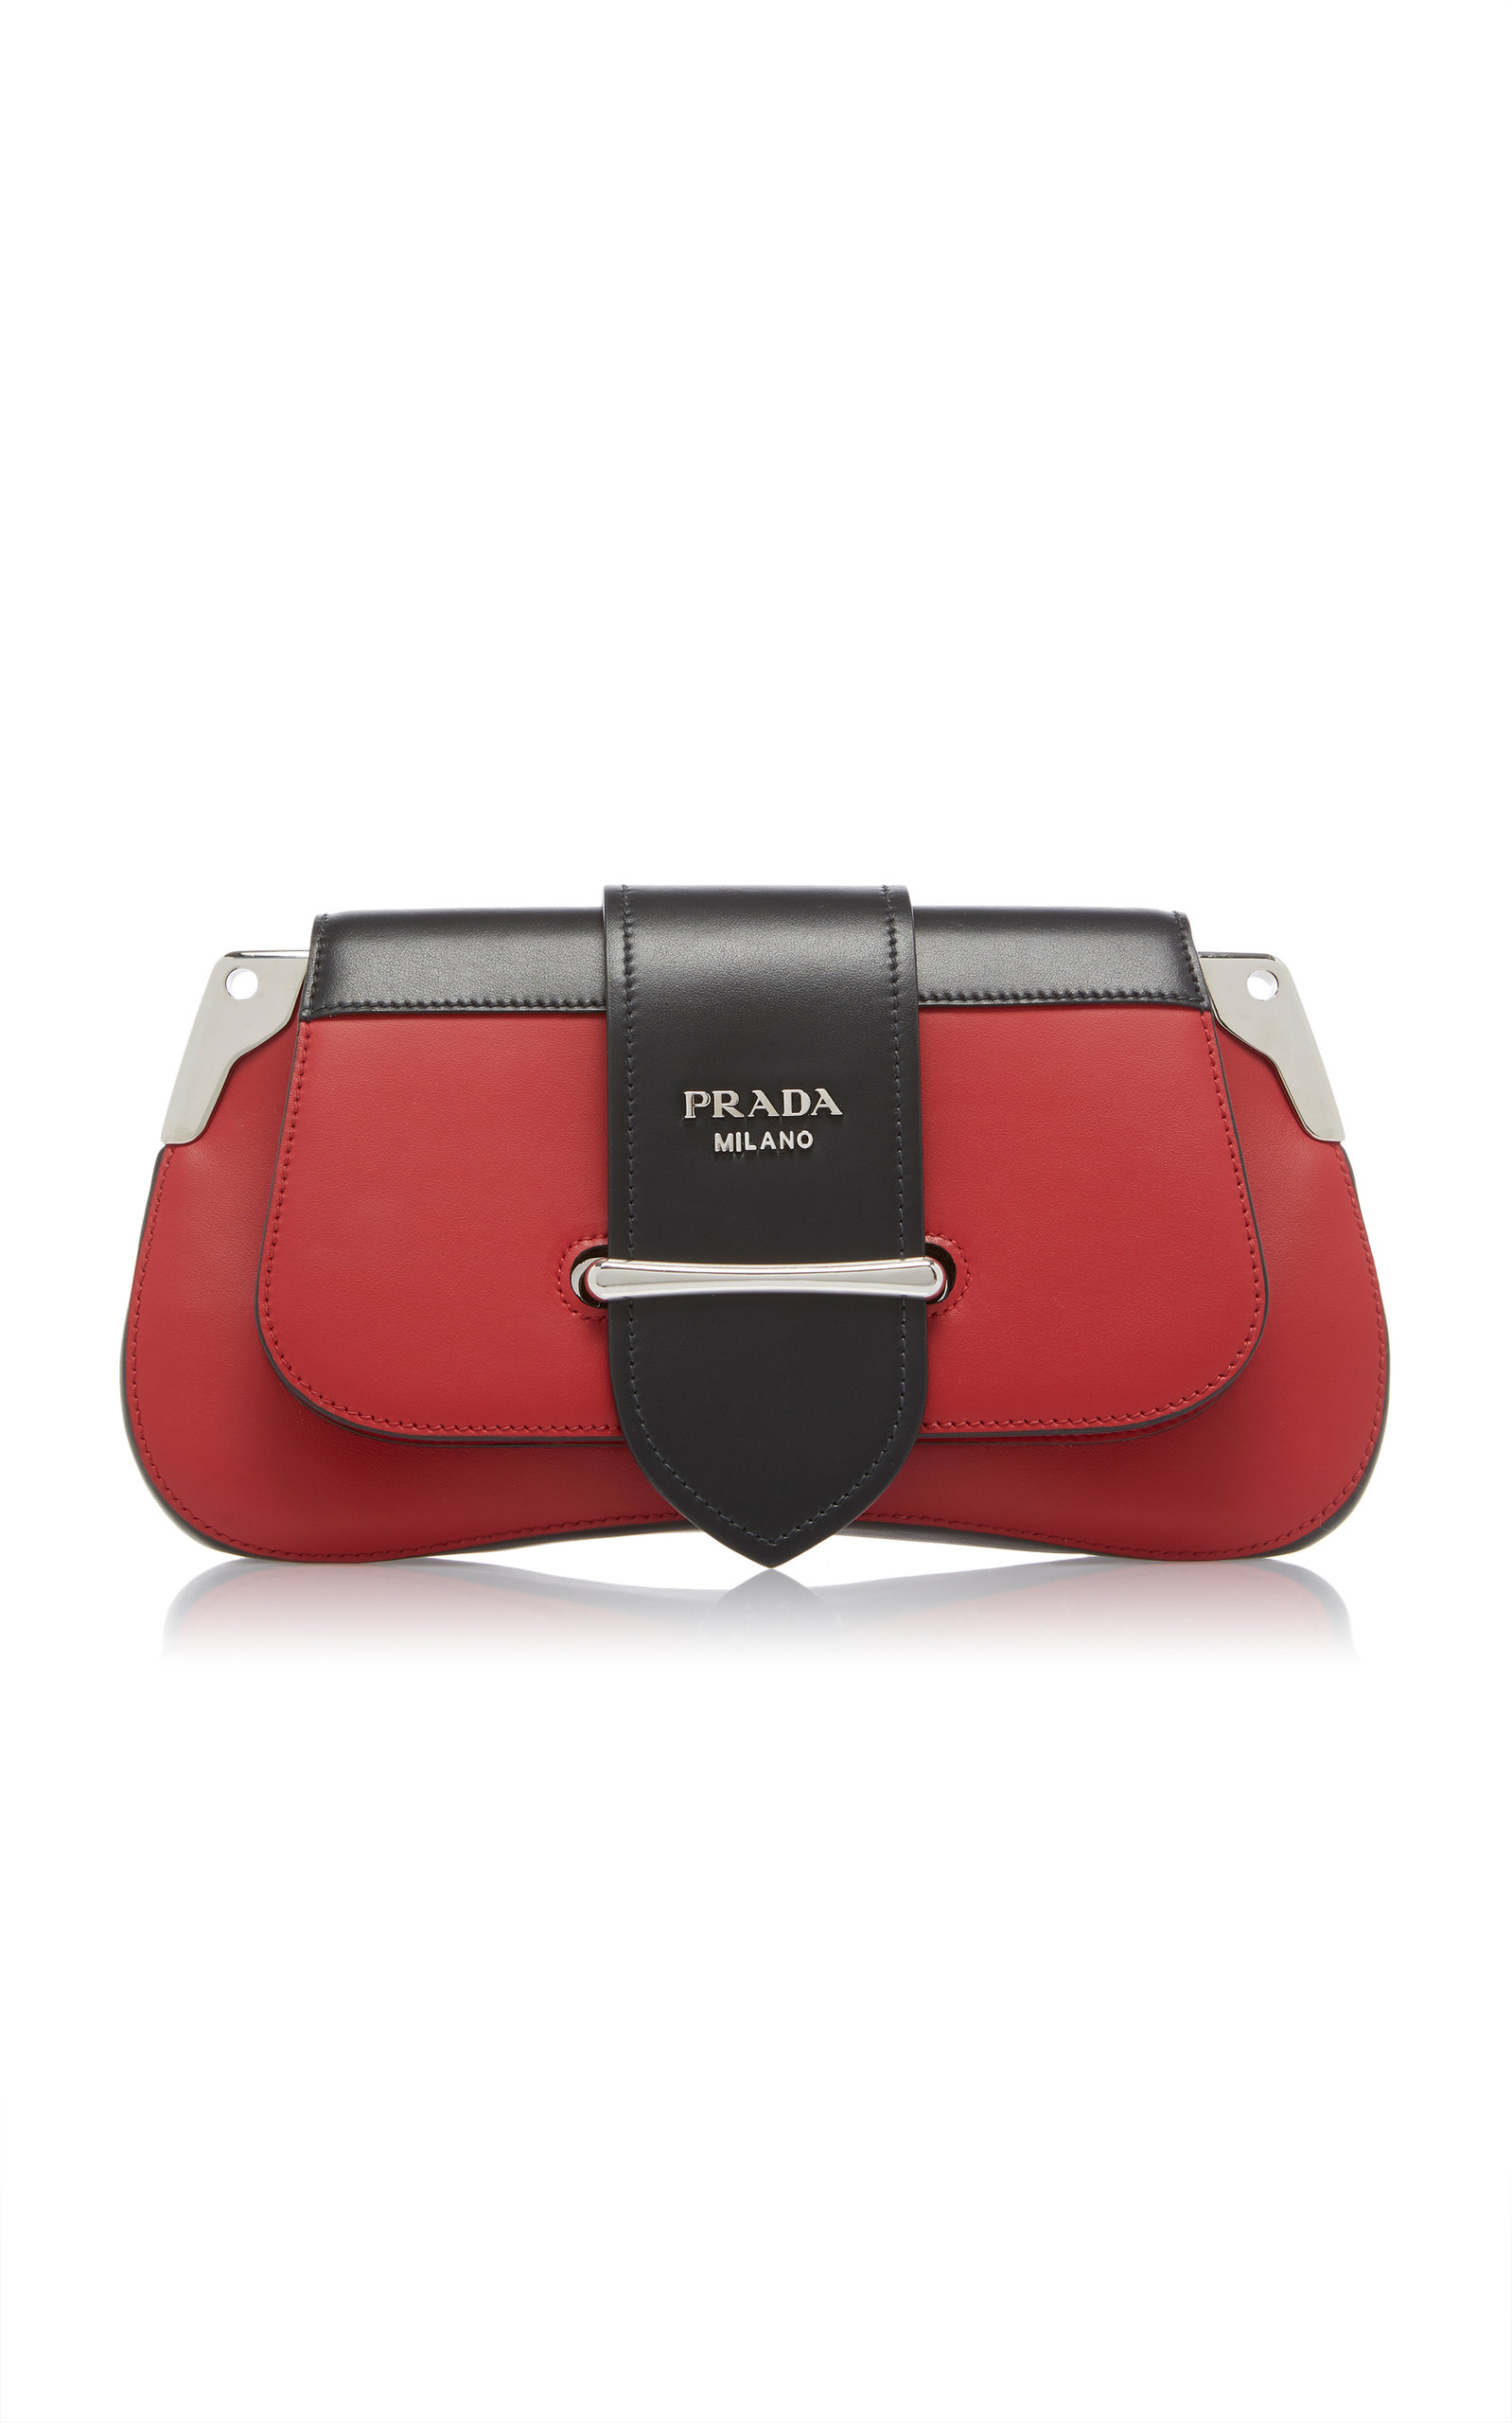 Textured Top Handle Bag in Spazzolato Prada vxg47X